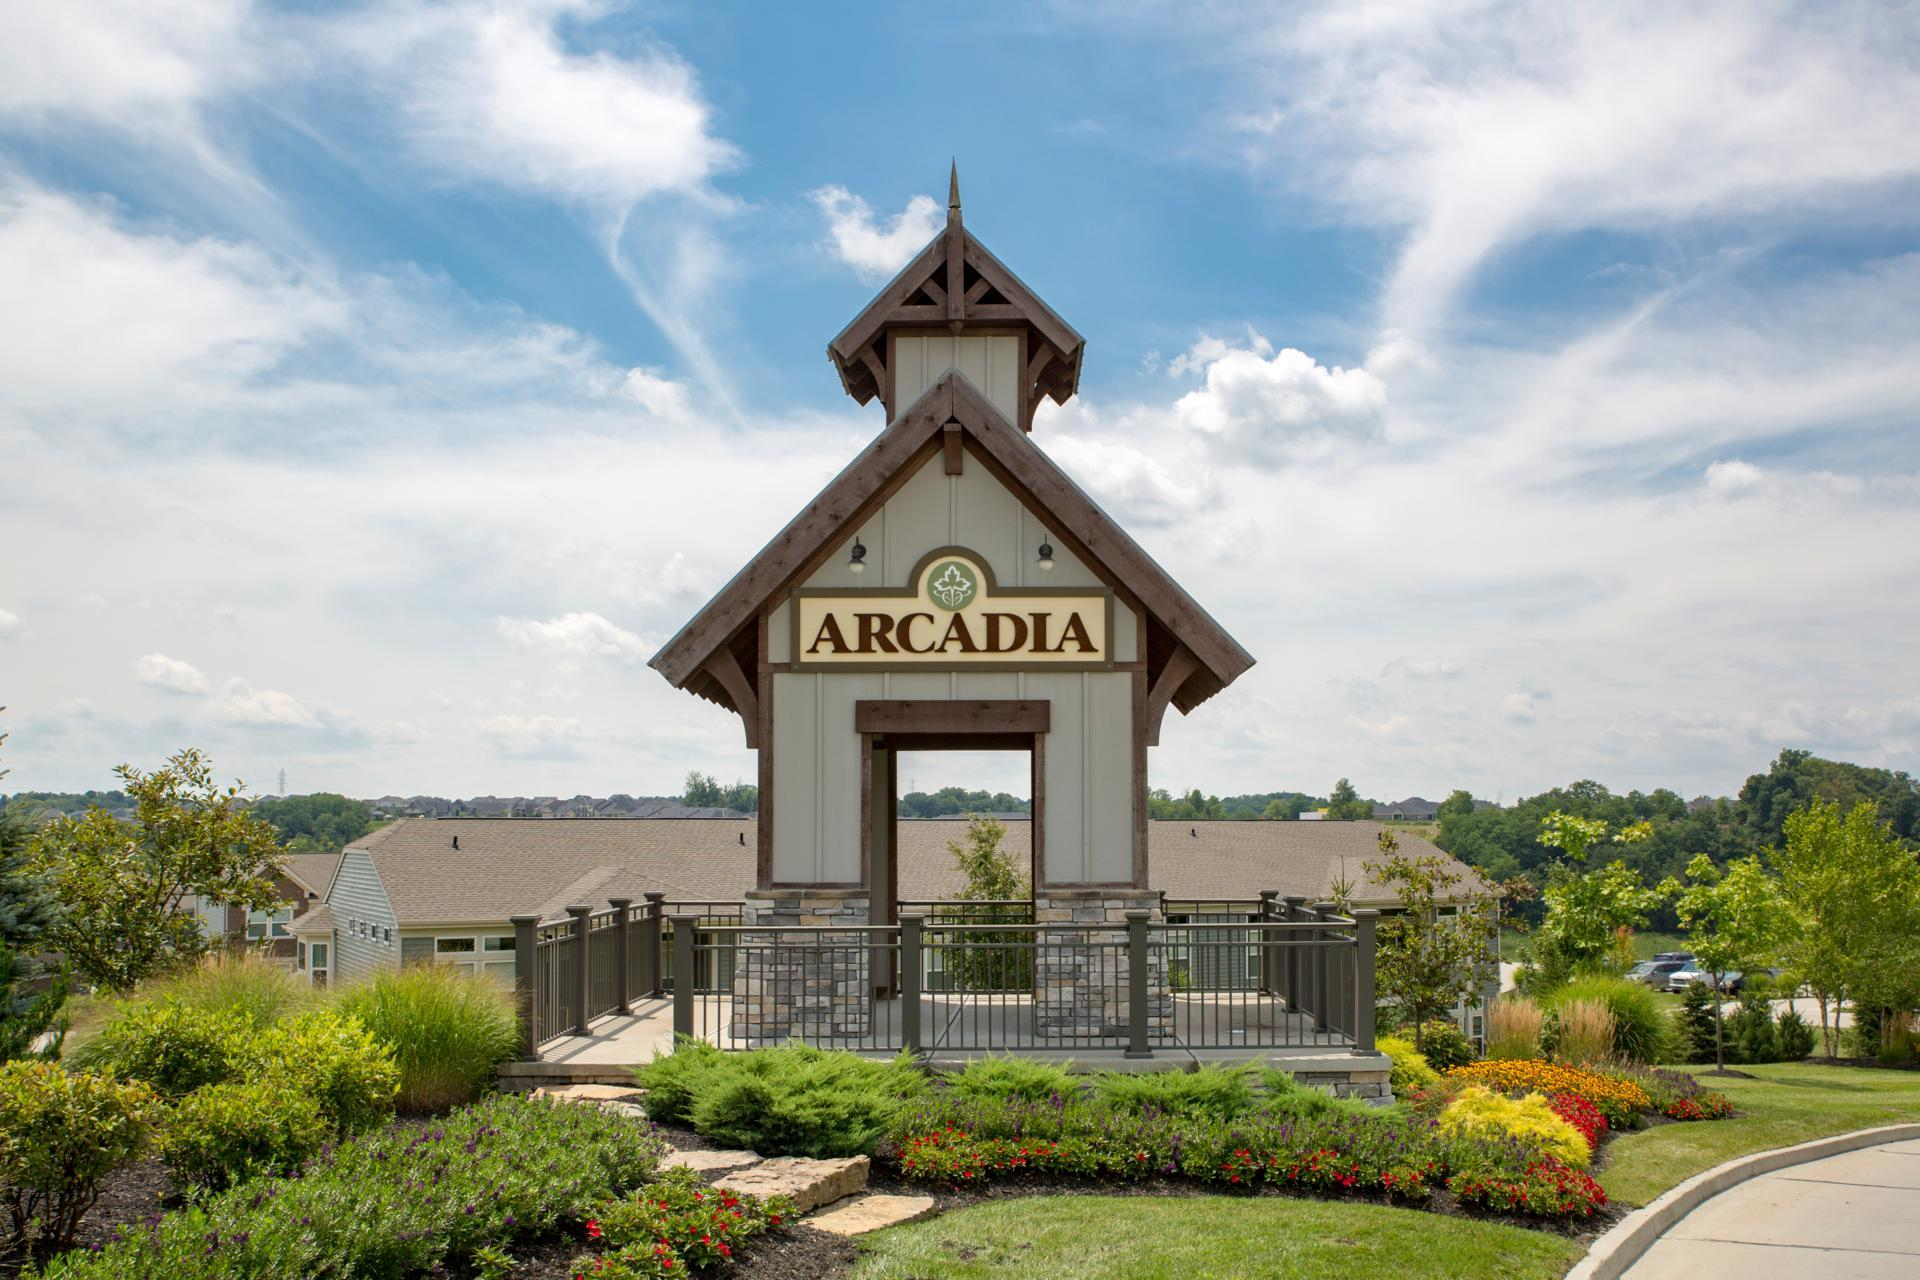 The Arcadia Community Entrance